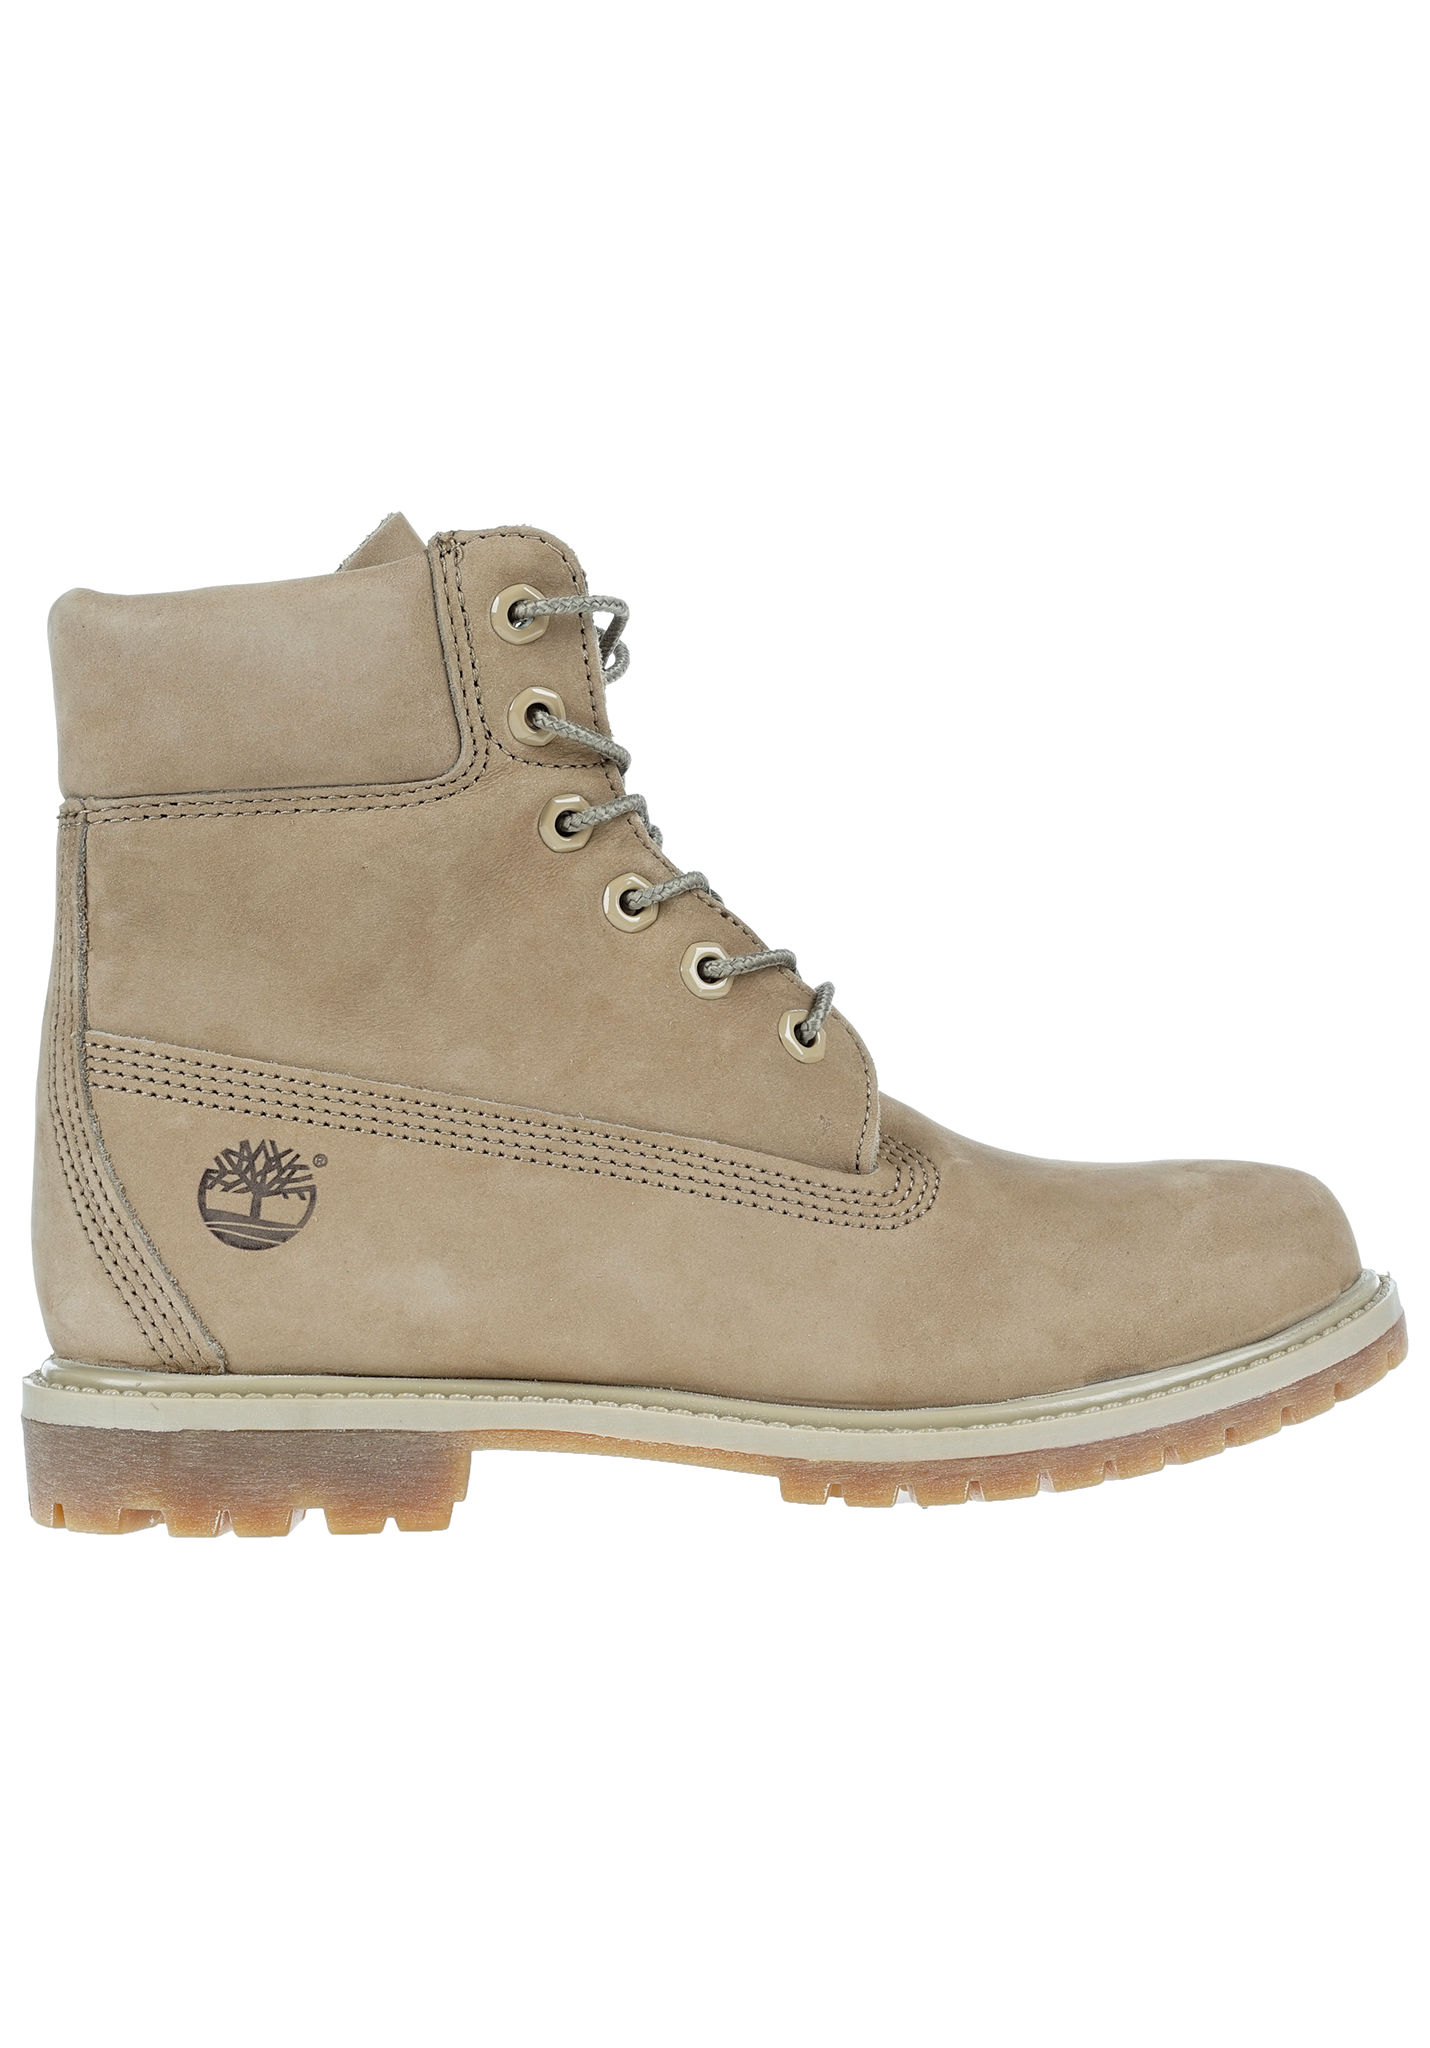 low priced c6f6c 5776d TIMBERLAND 6 inch Premium - Boots for Women - Beige